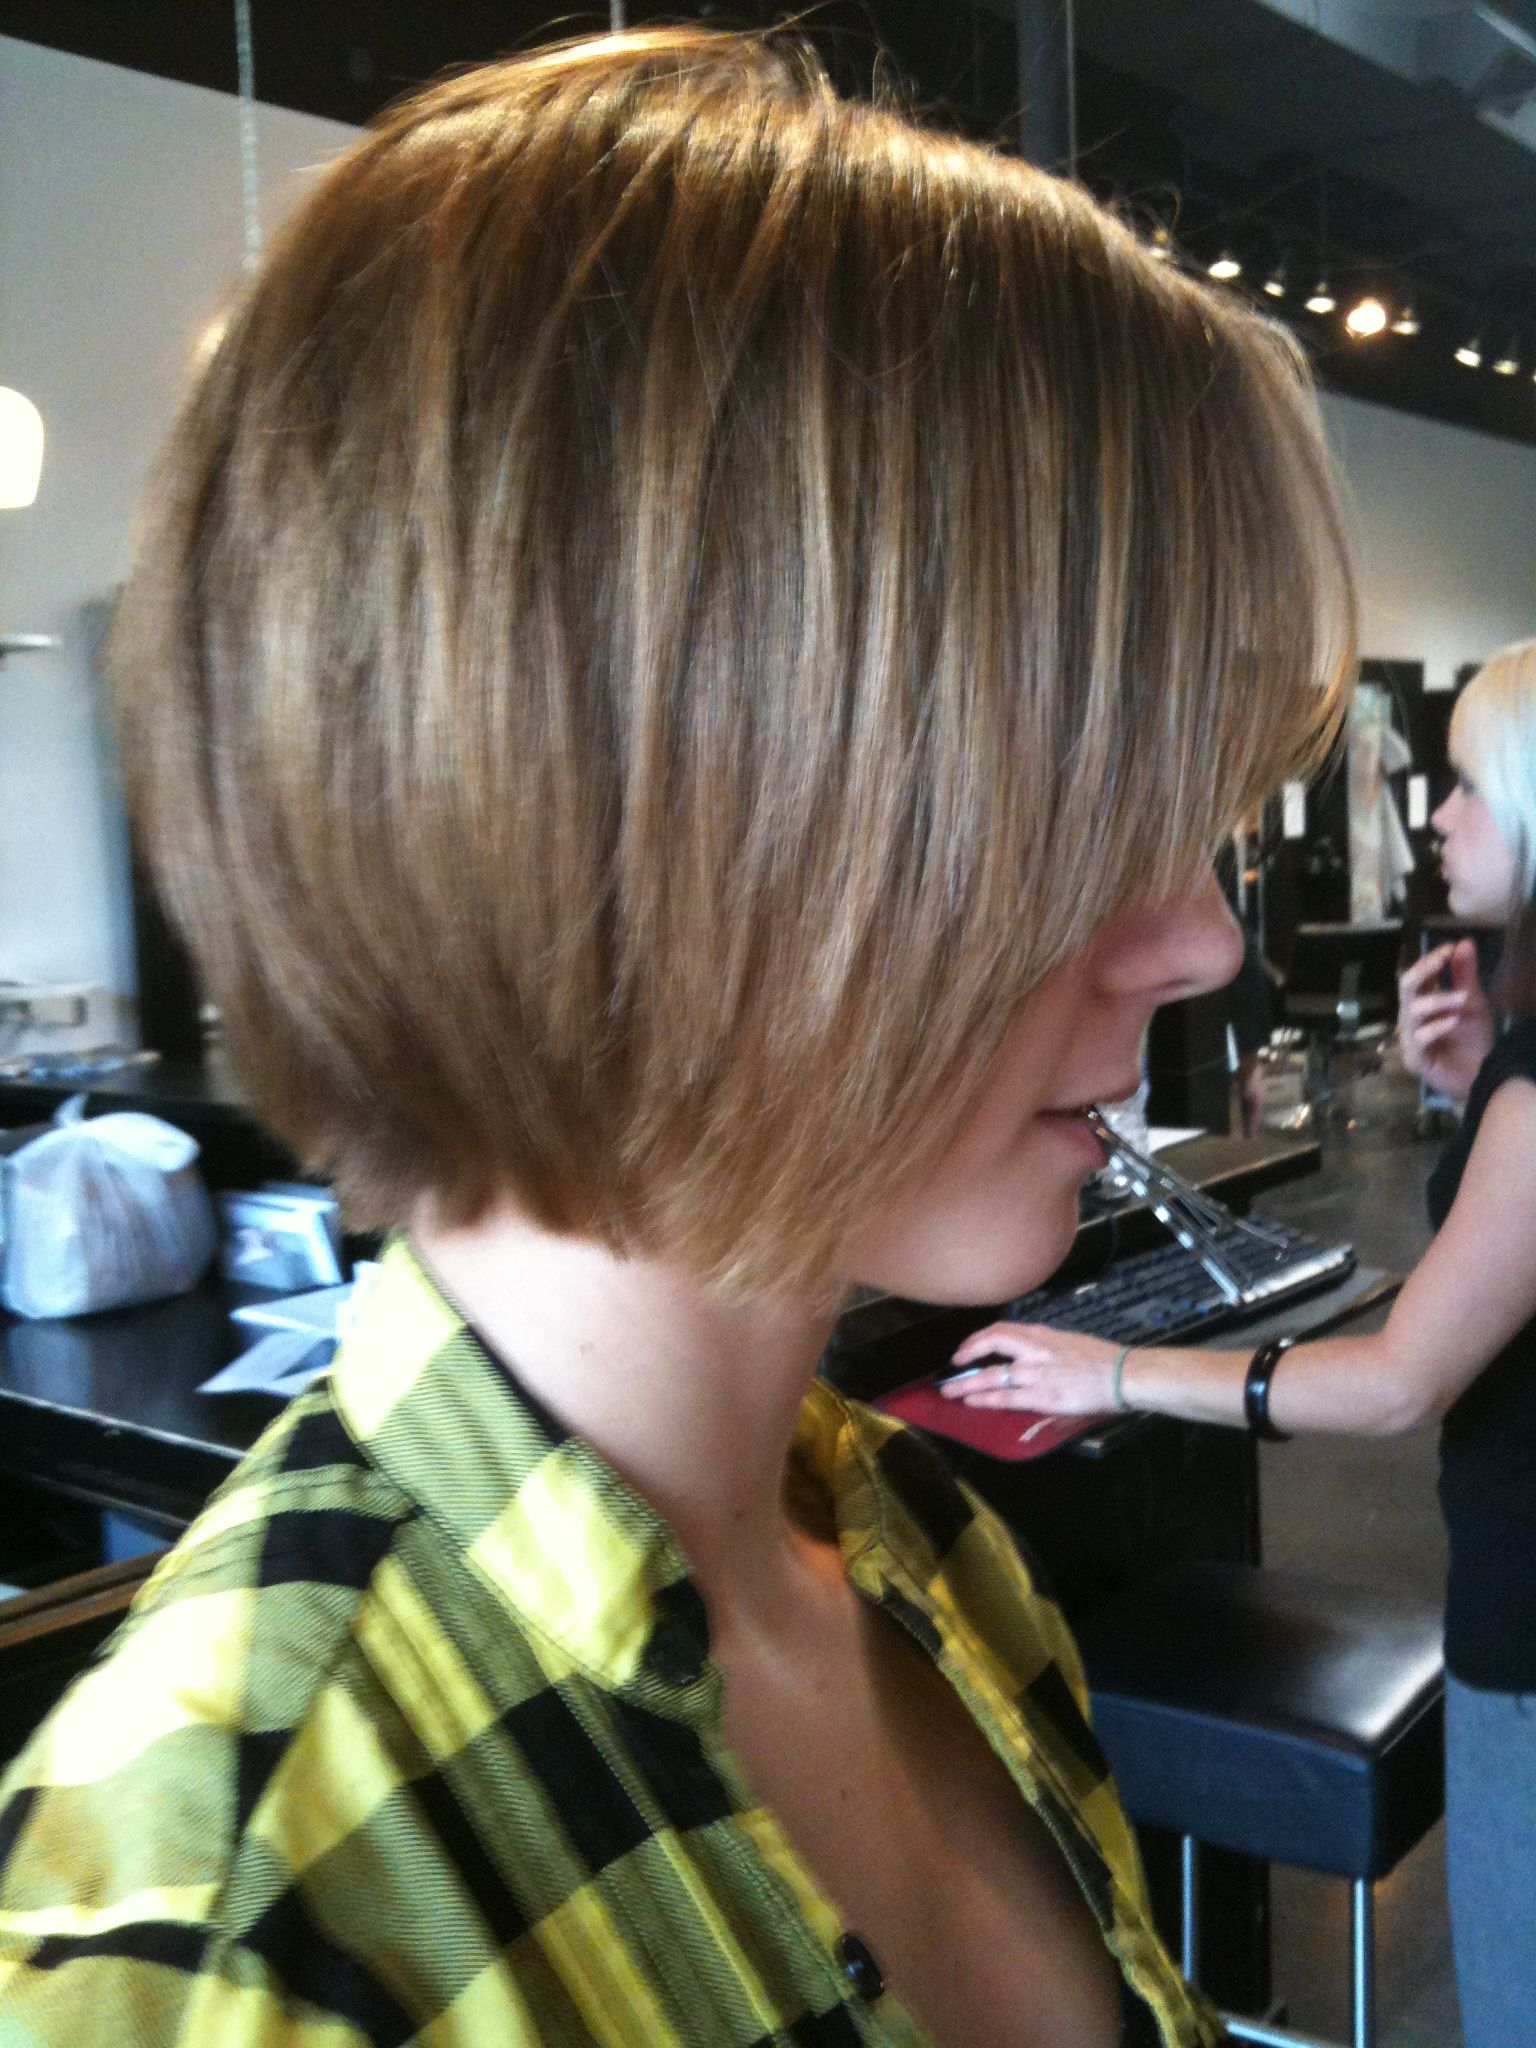 Pin On My Hair Obsession For Jaw Length Shaggy Bob Hairstyles (Gallery 19 of 20)